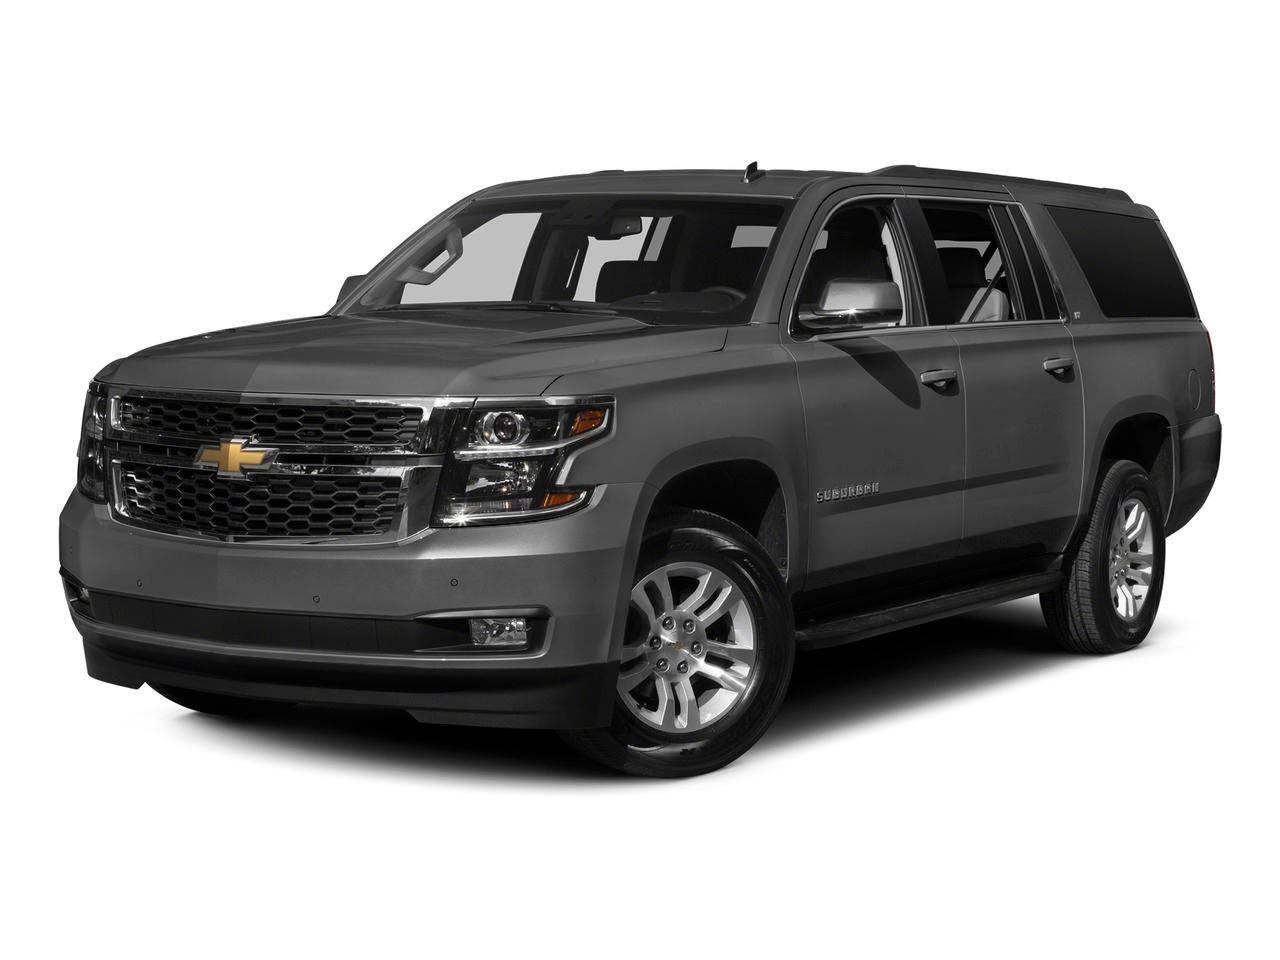 2015 Chevrolet Suburban Vehicle Photo in South Portland, ME 04106